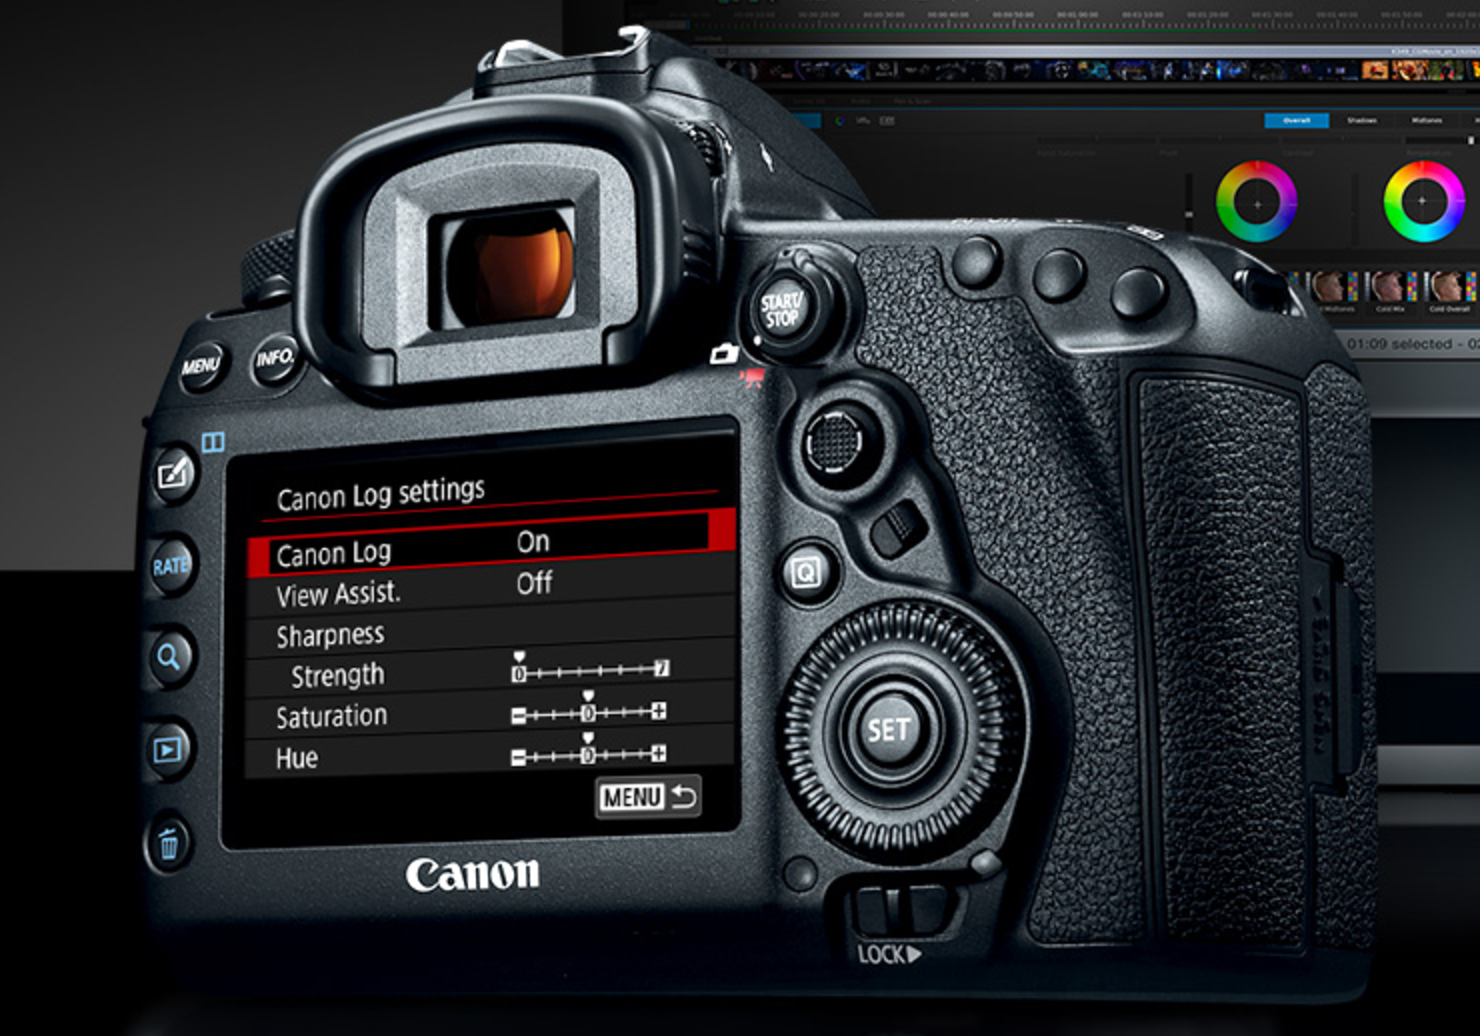 Learn more about Canon's C-Log Firmware details here!